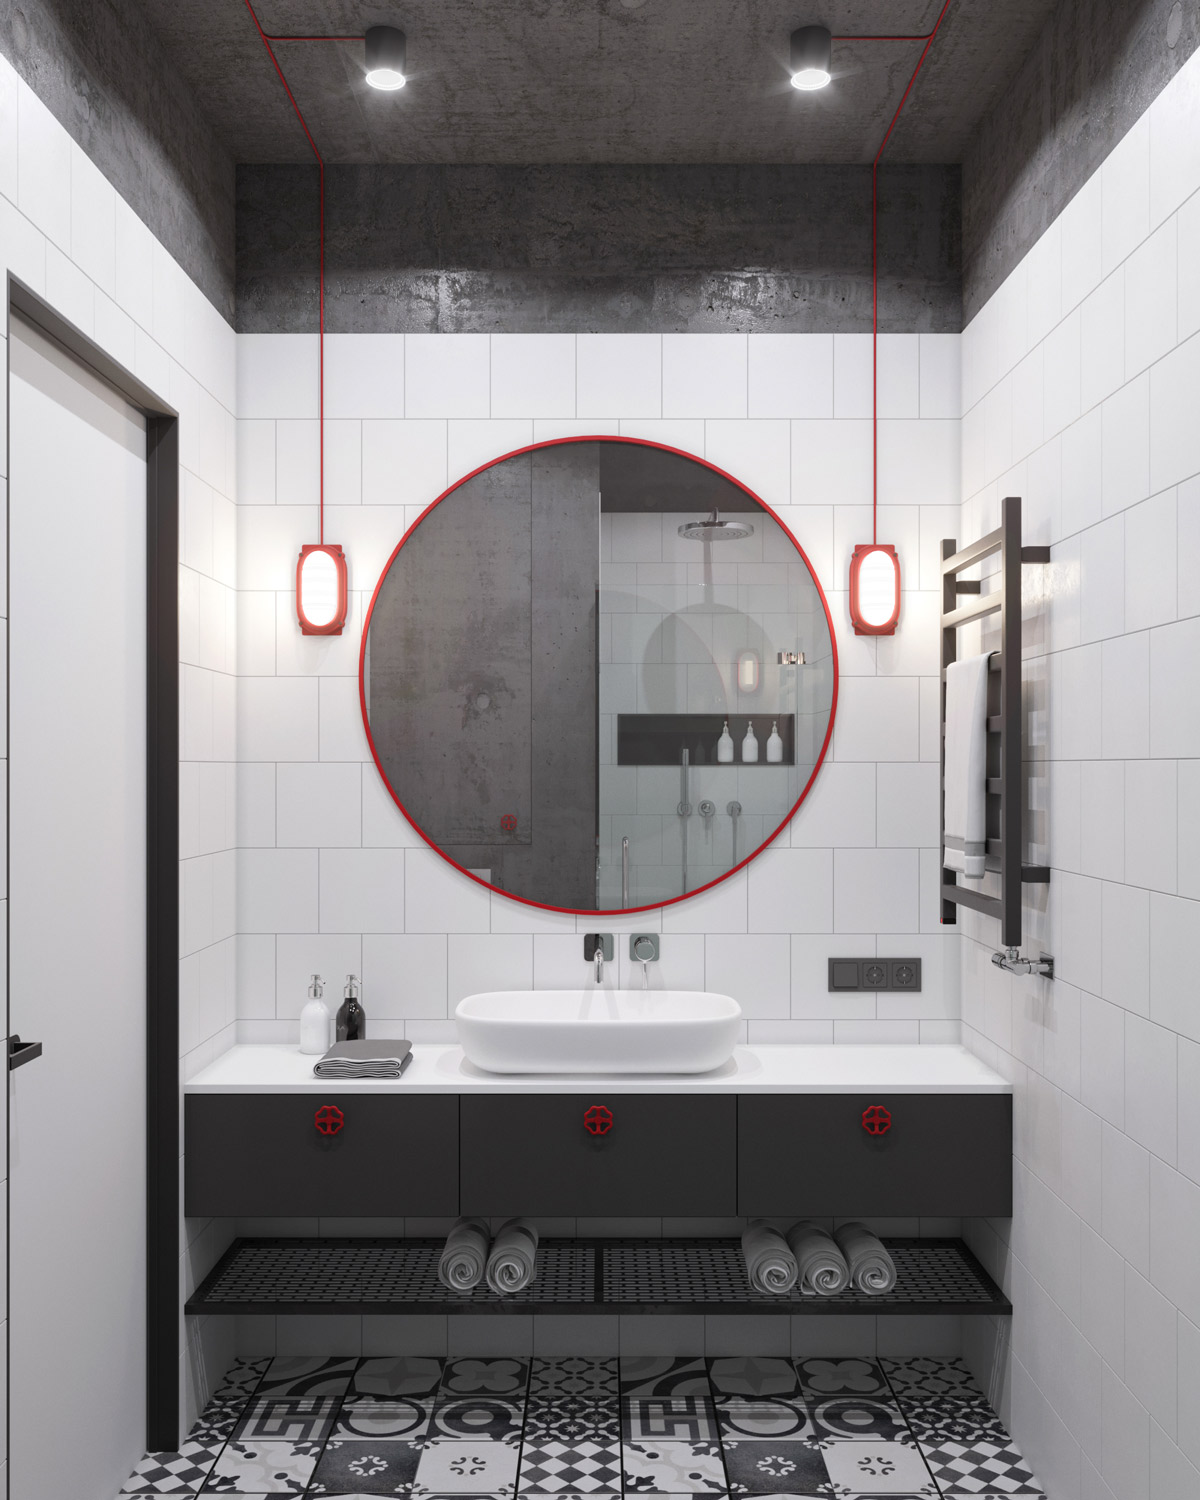 Red Industrial Accents In White And Grey Bathroom Decor - 5 studio apartments with inspiring modern decor themes